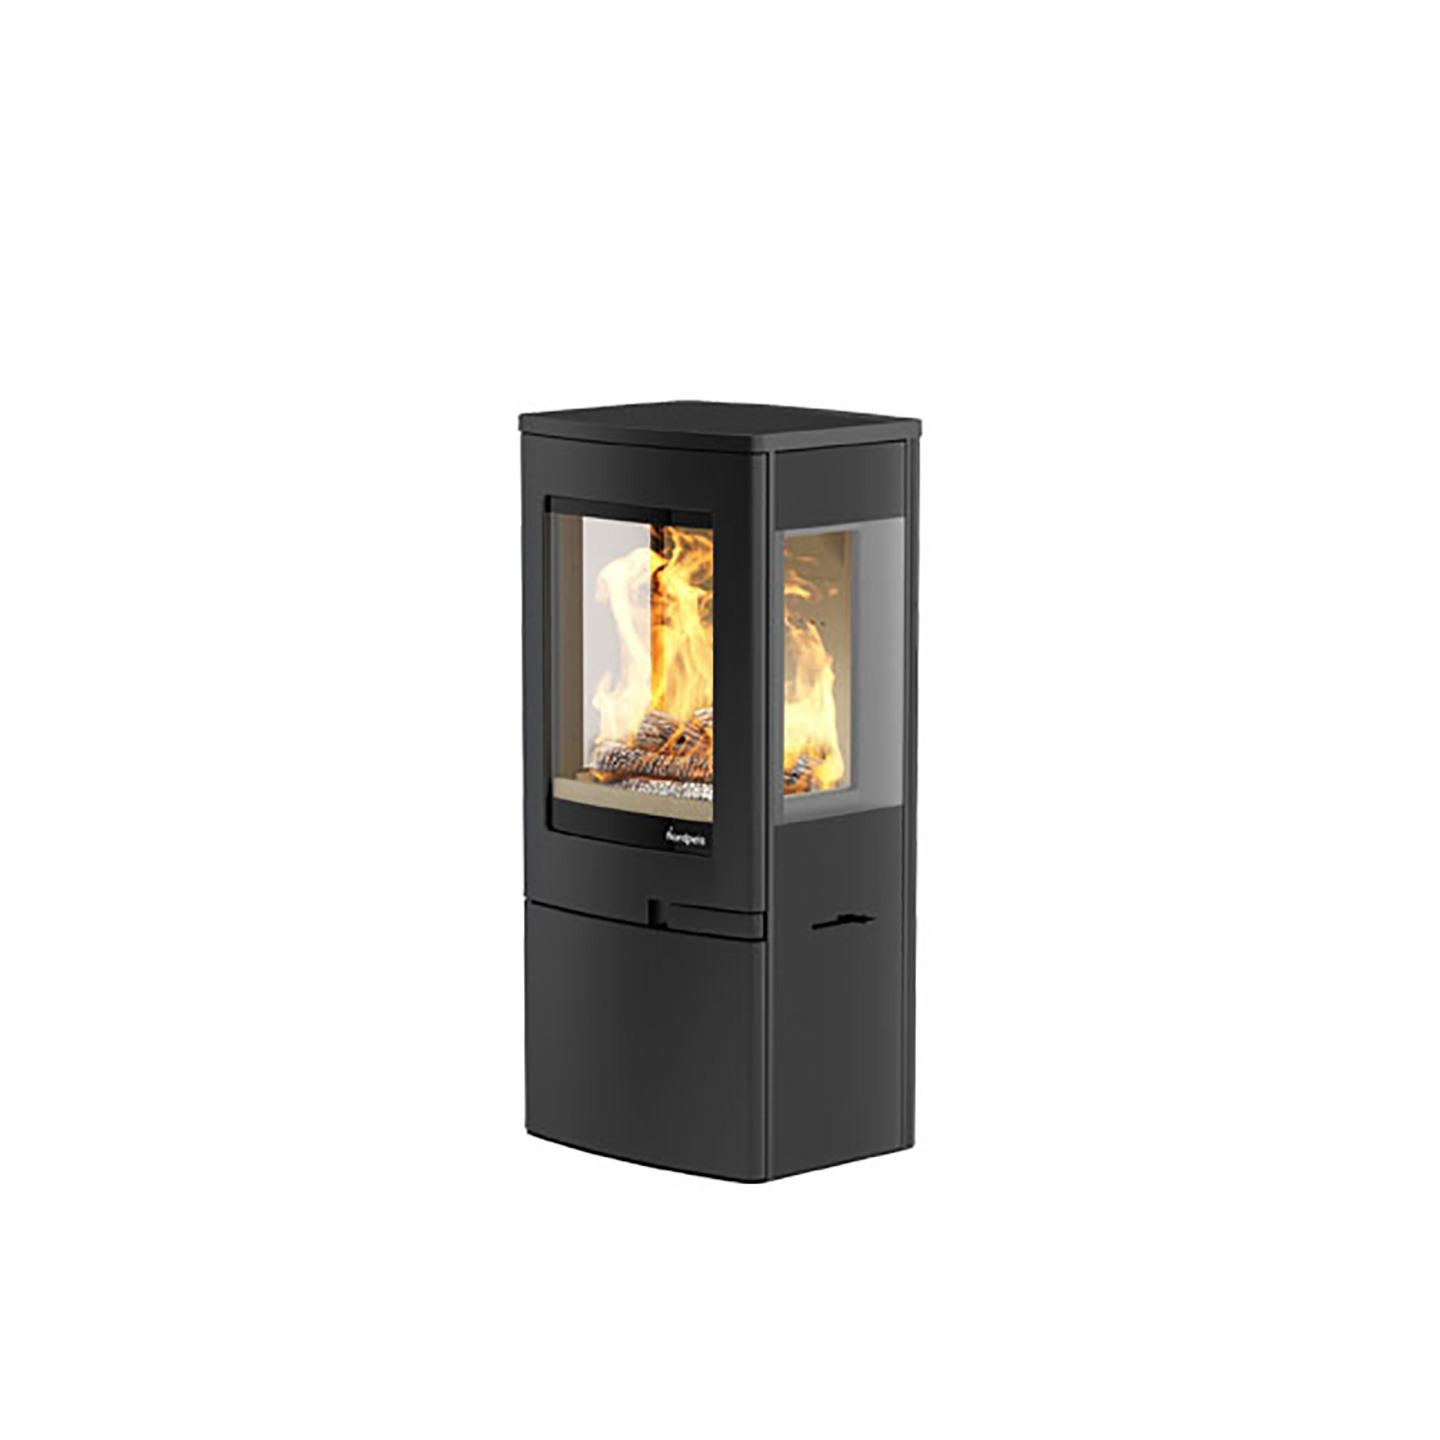 Nordpeis Uno 4 Wood Burning Stove Approved Dealer The